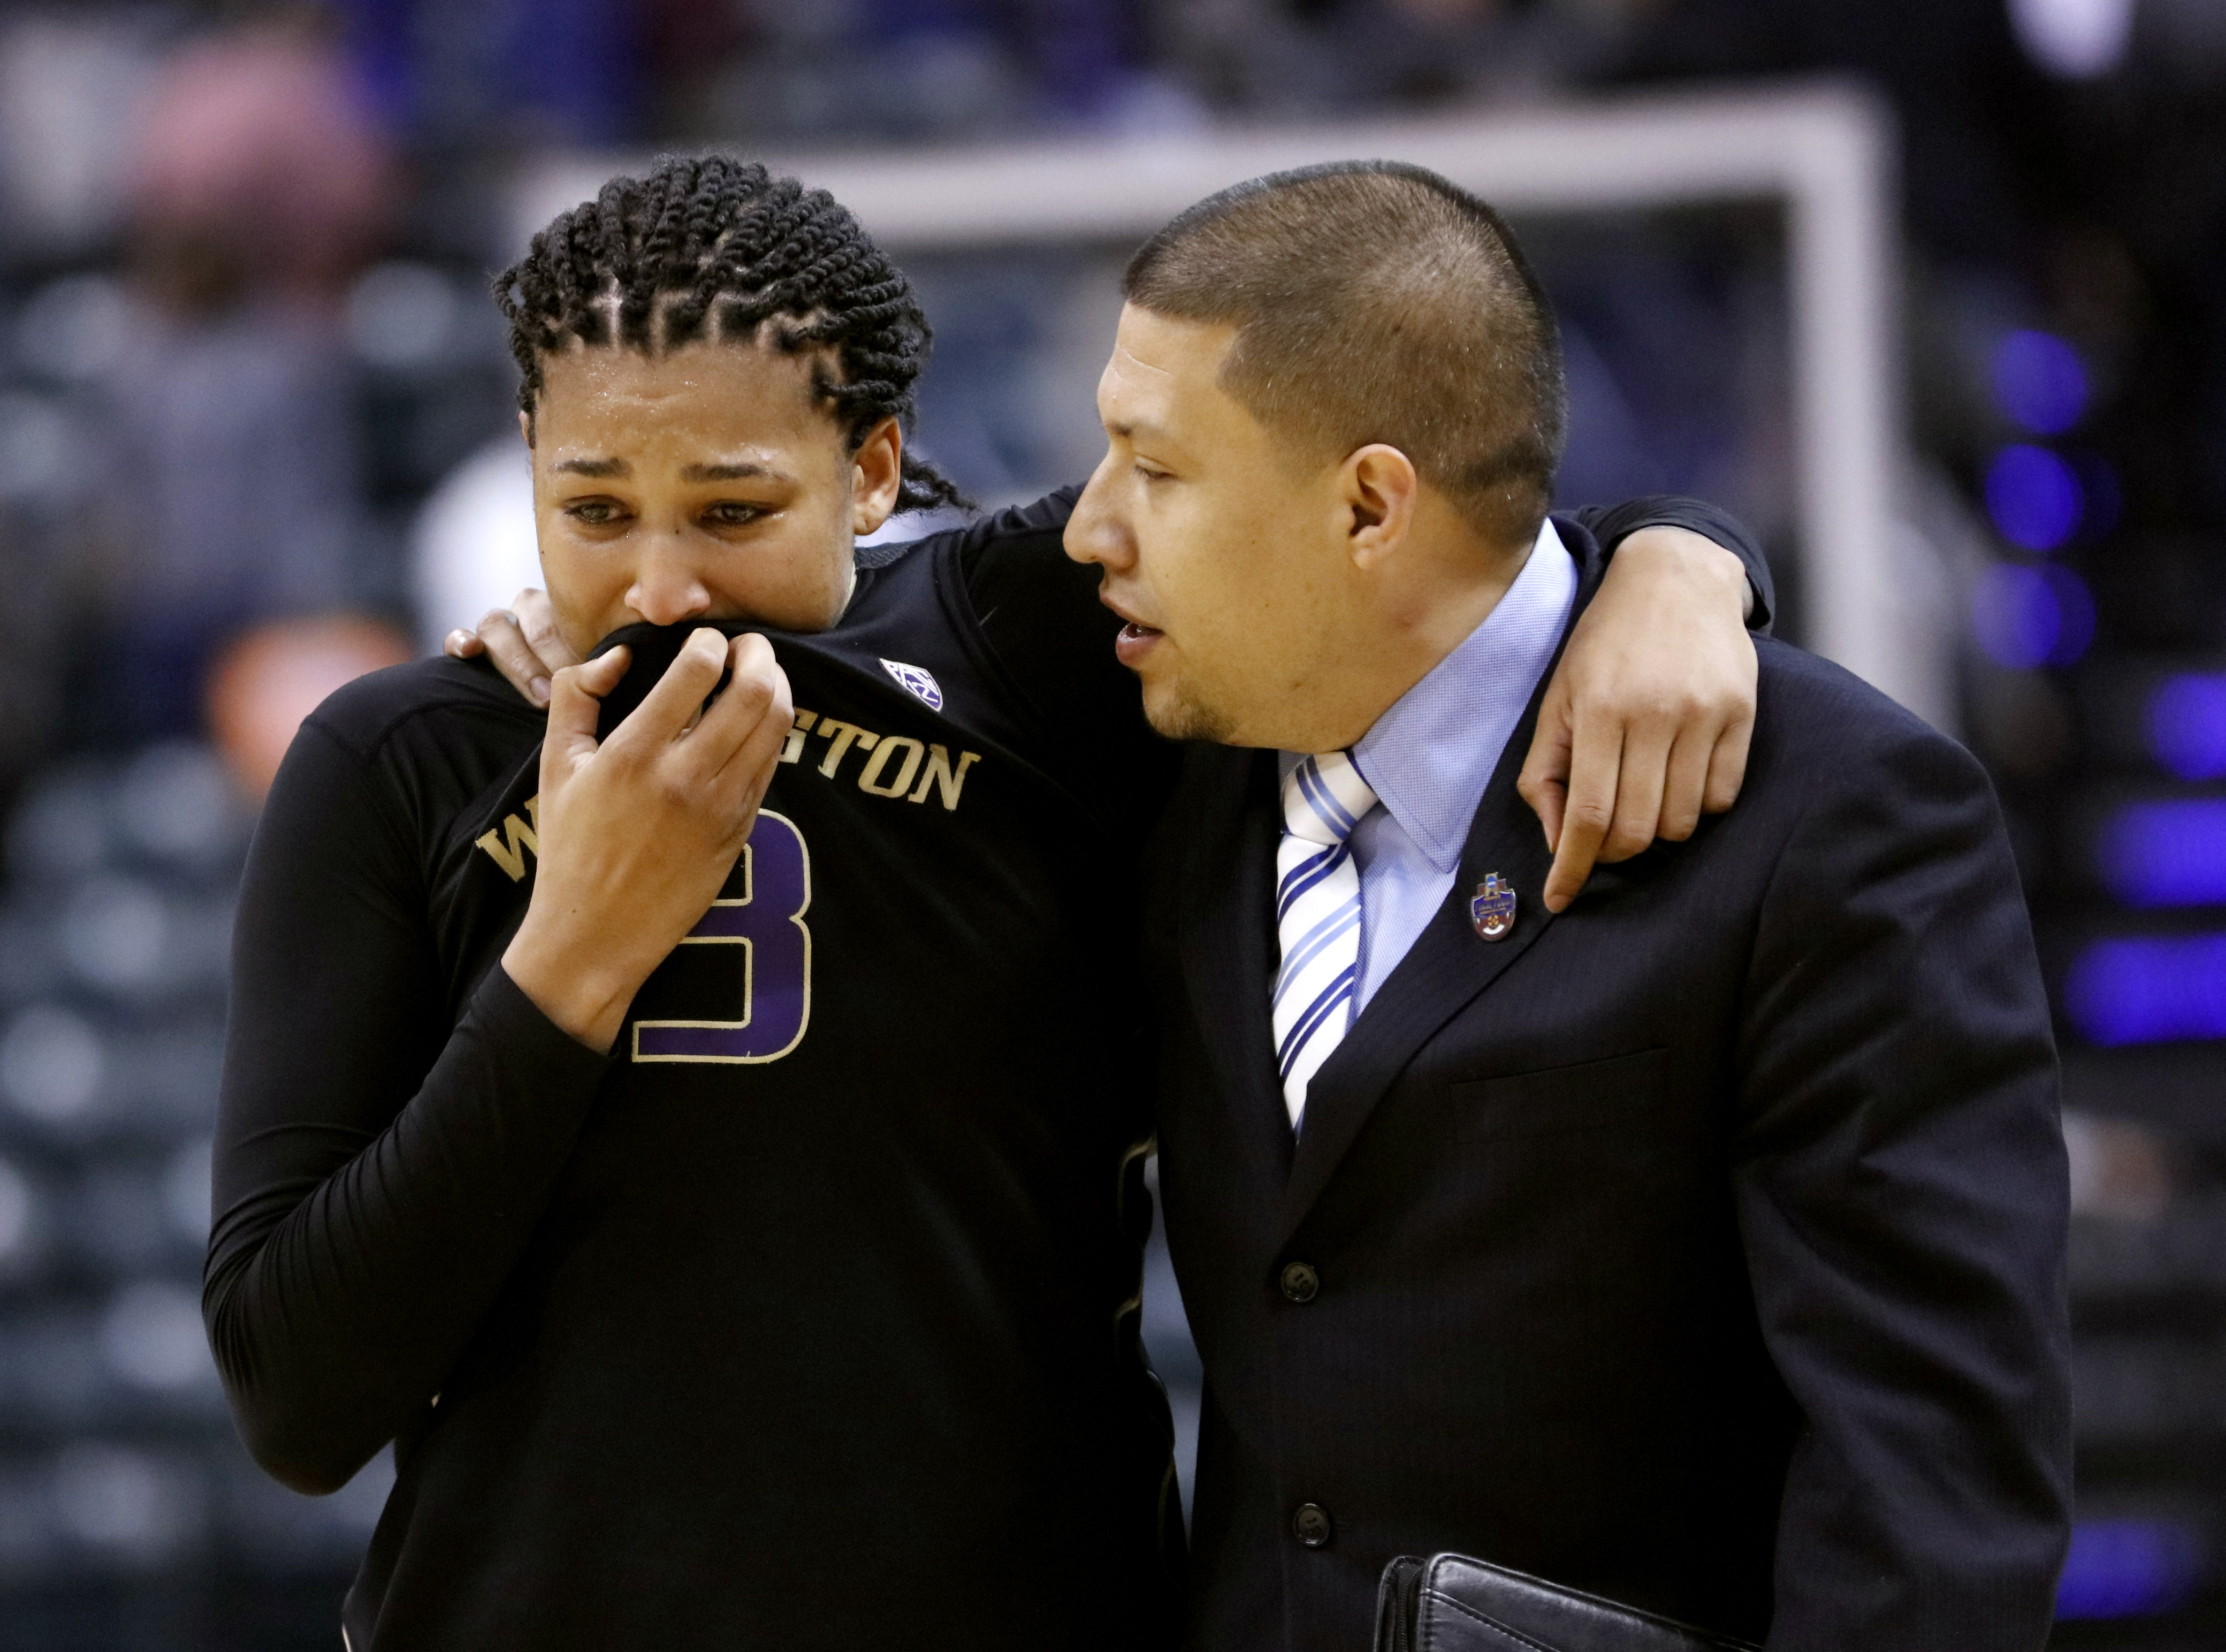 Washington's Talia Walton (3) is comforted by assistant coach Fred Castro following a national semifinal game against Syracuse, at the women's Final Four in the NCAA college basketball tournament Sunday, April 3, 2016, in Indianapolis. Syracuse won 80-59.